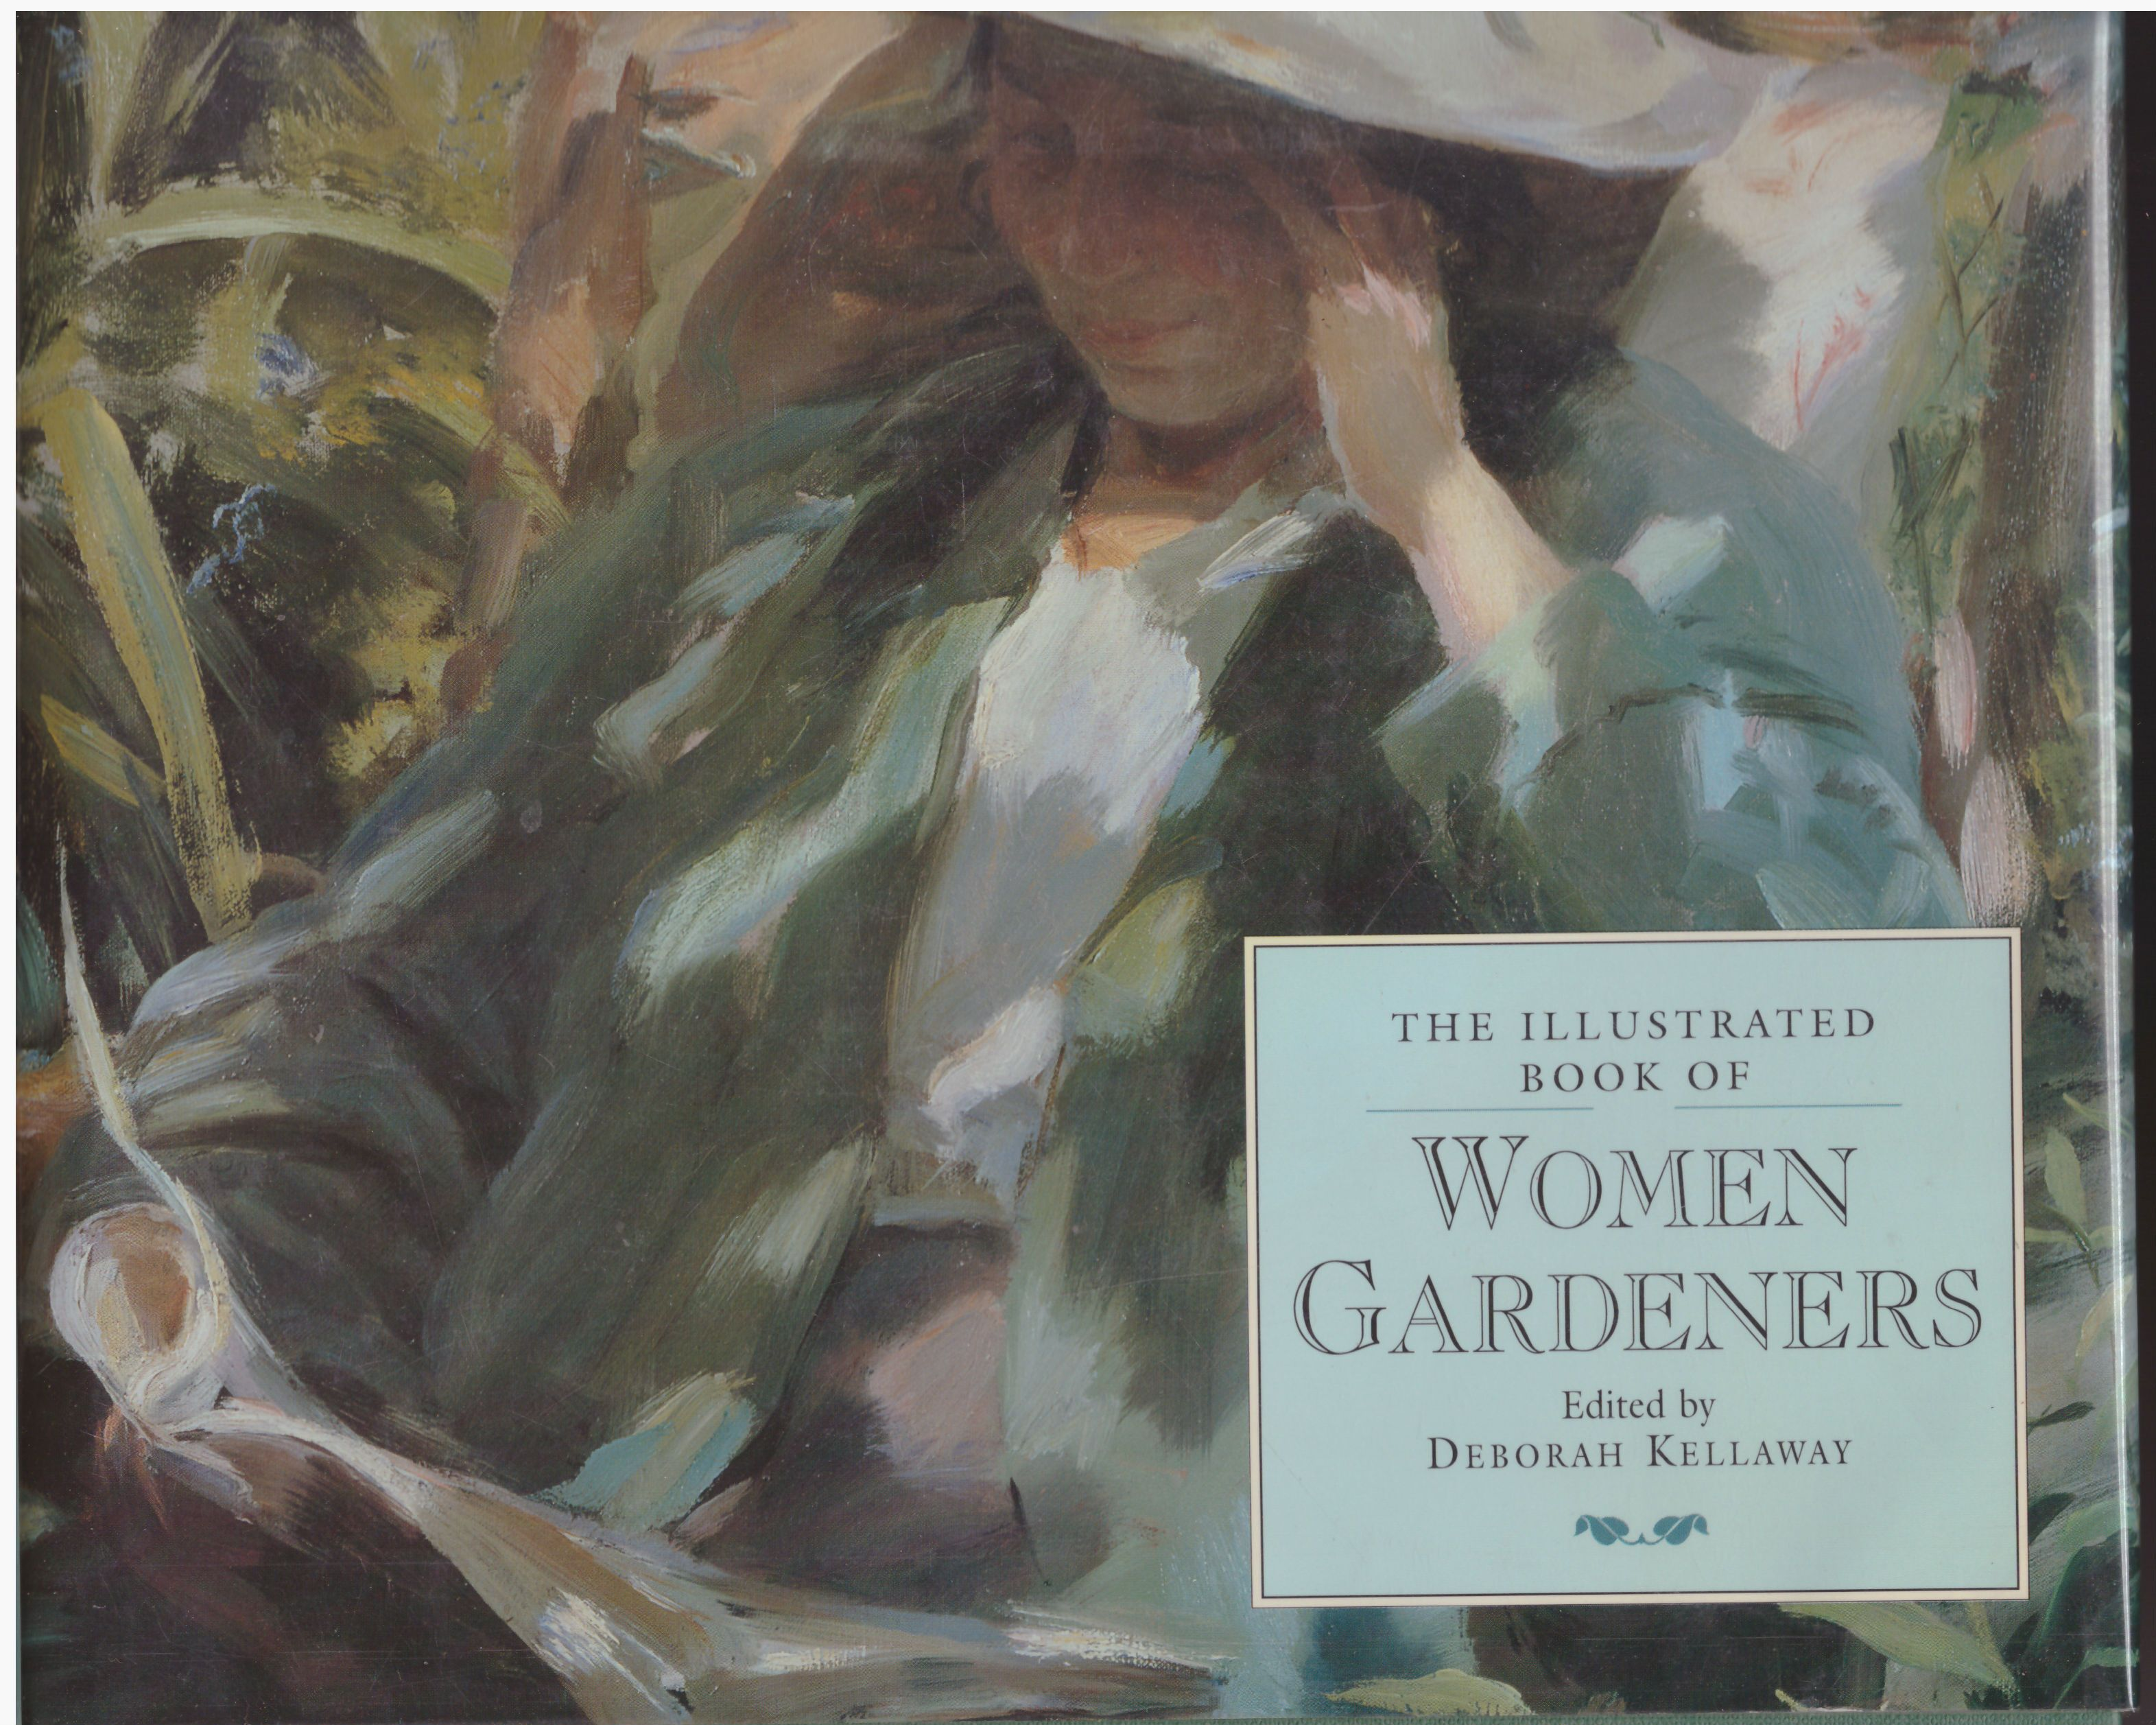 The Illustrated Book of Women Gardeners